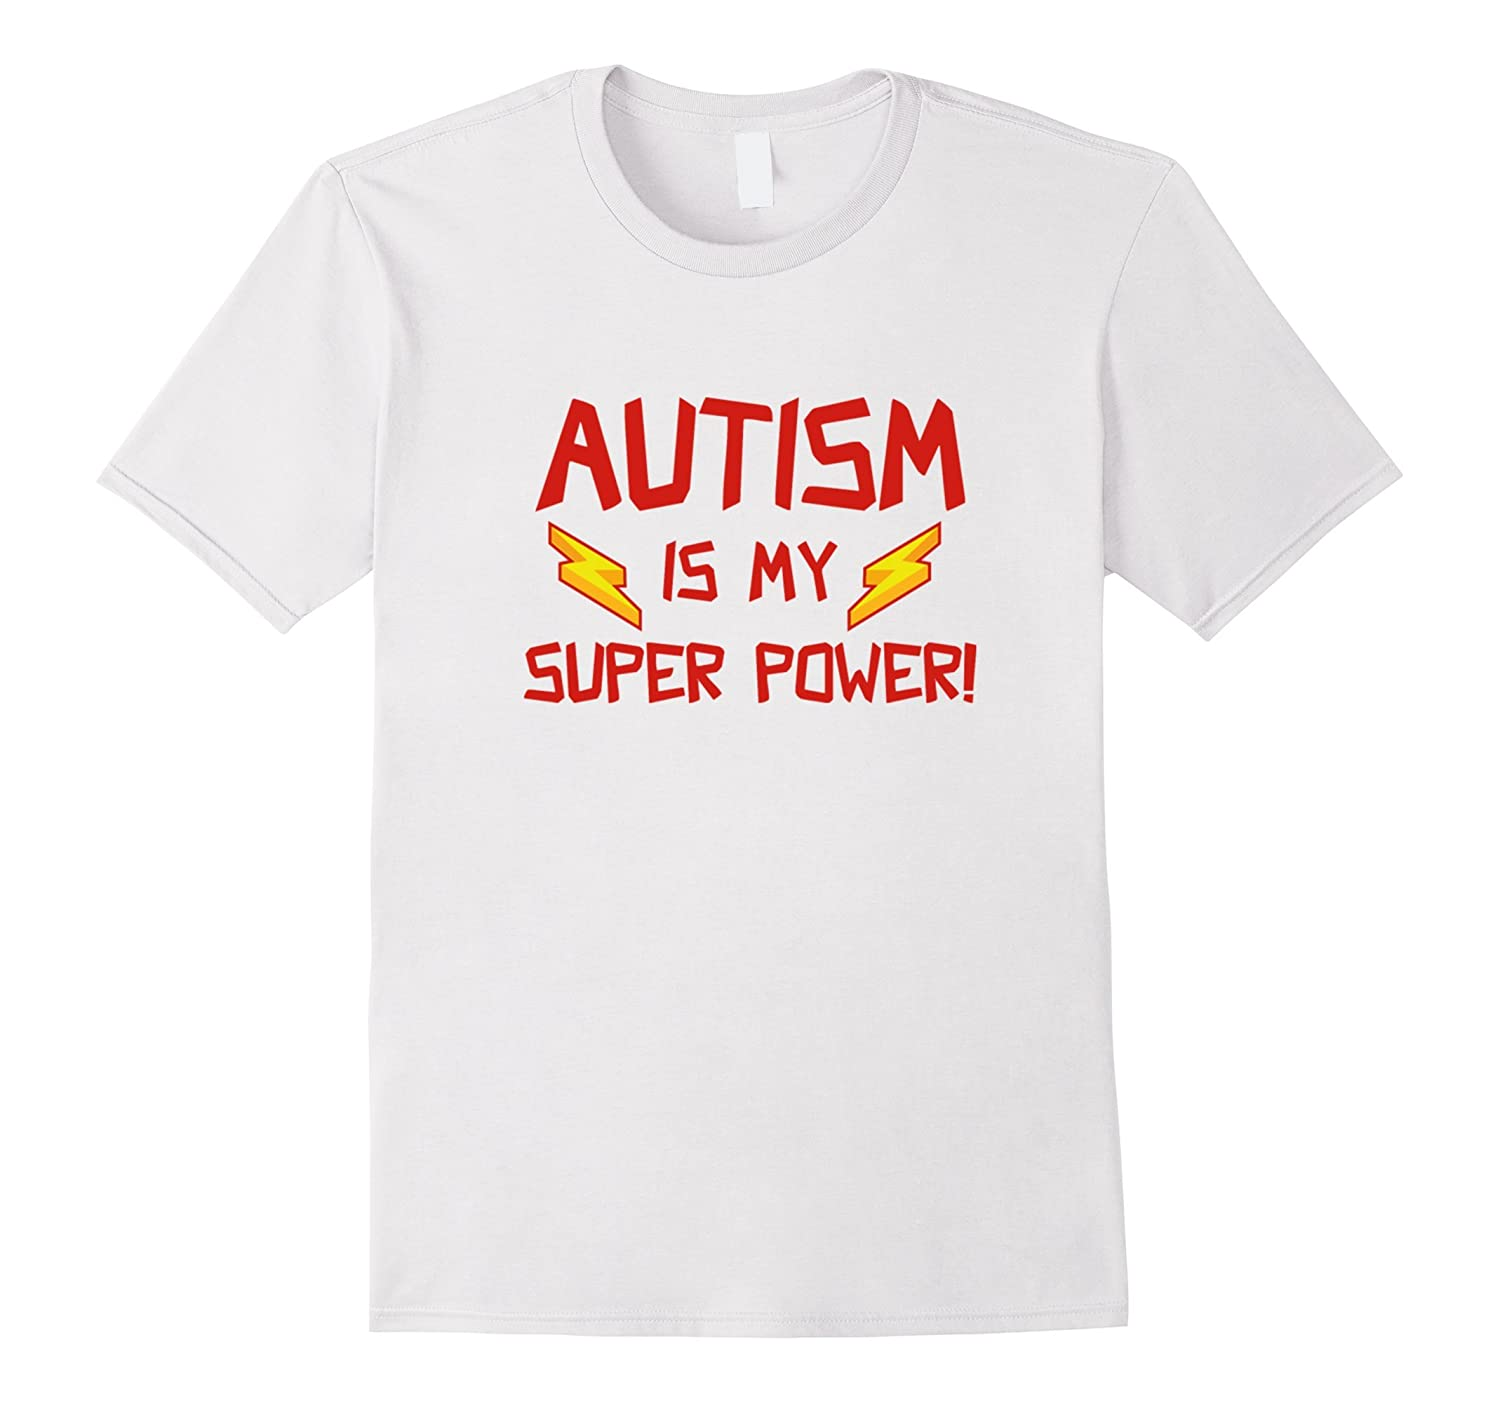 c0aaa7d6 Autism is My Super Power T-Shirt-Autism Shirt Gift-CL – Colamaga